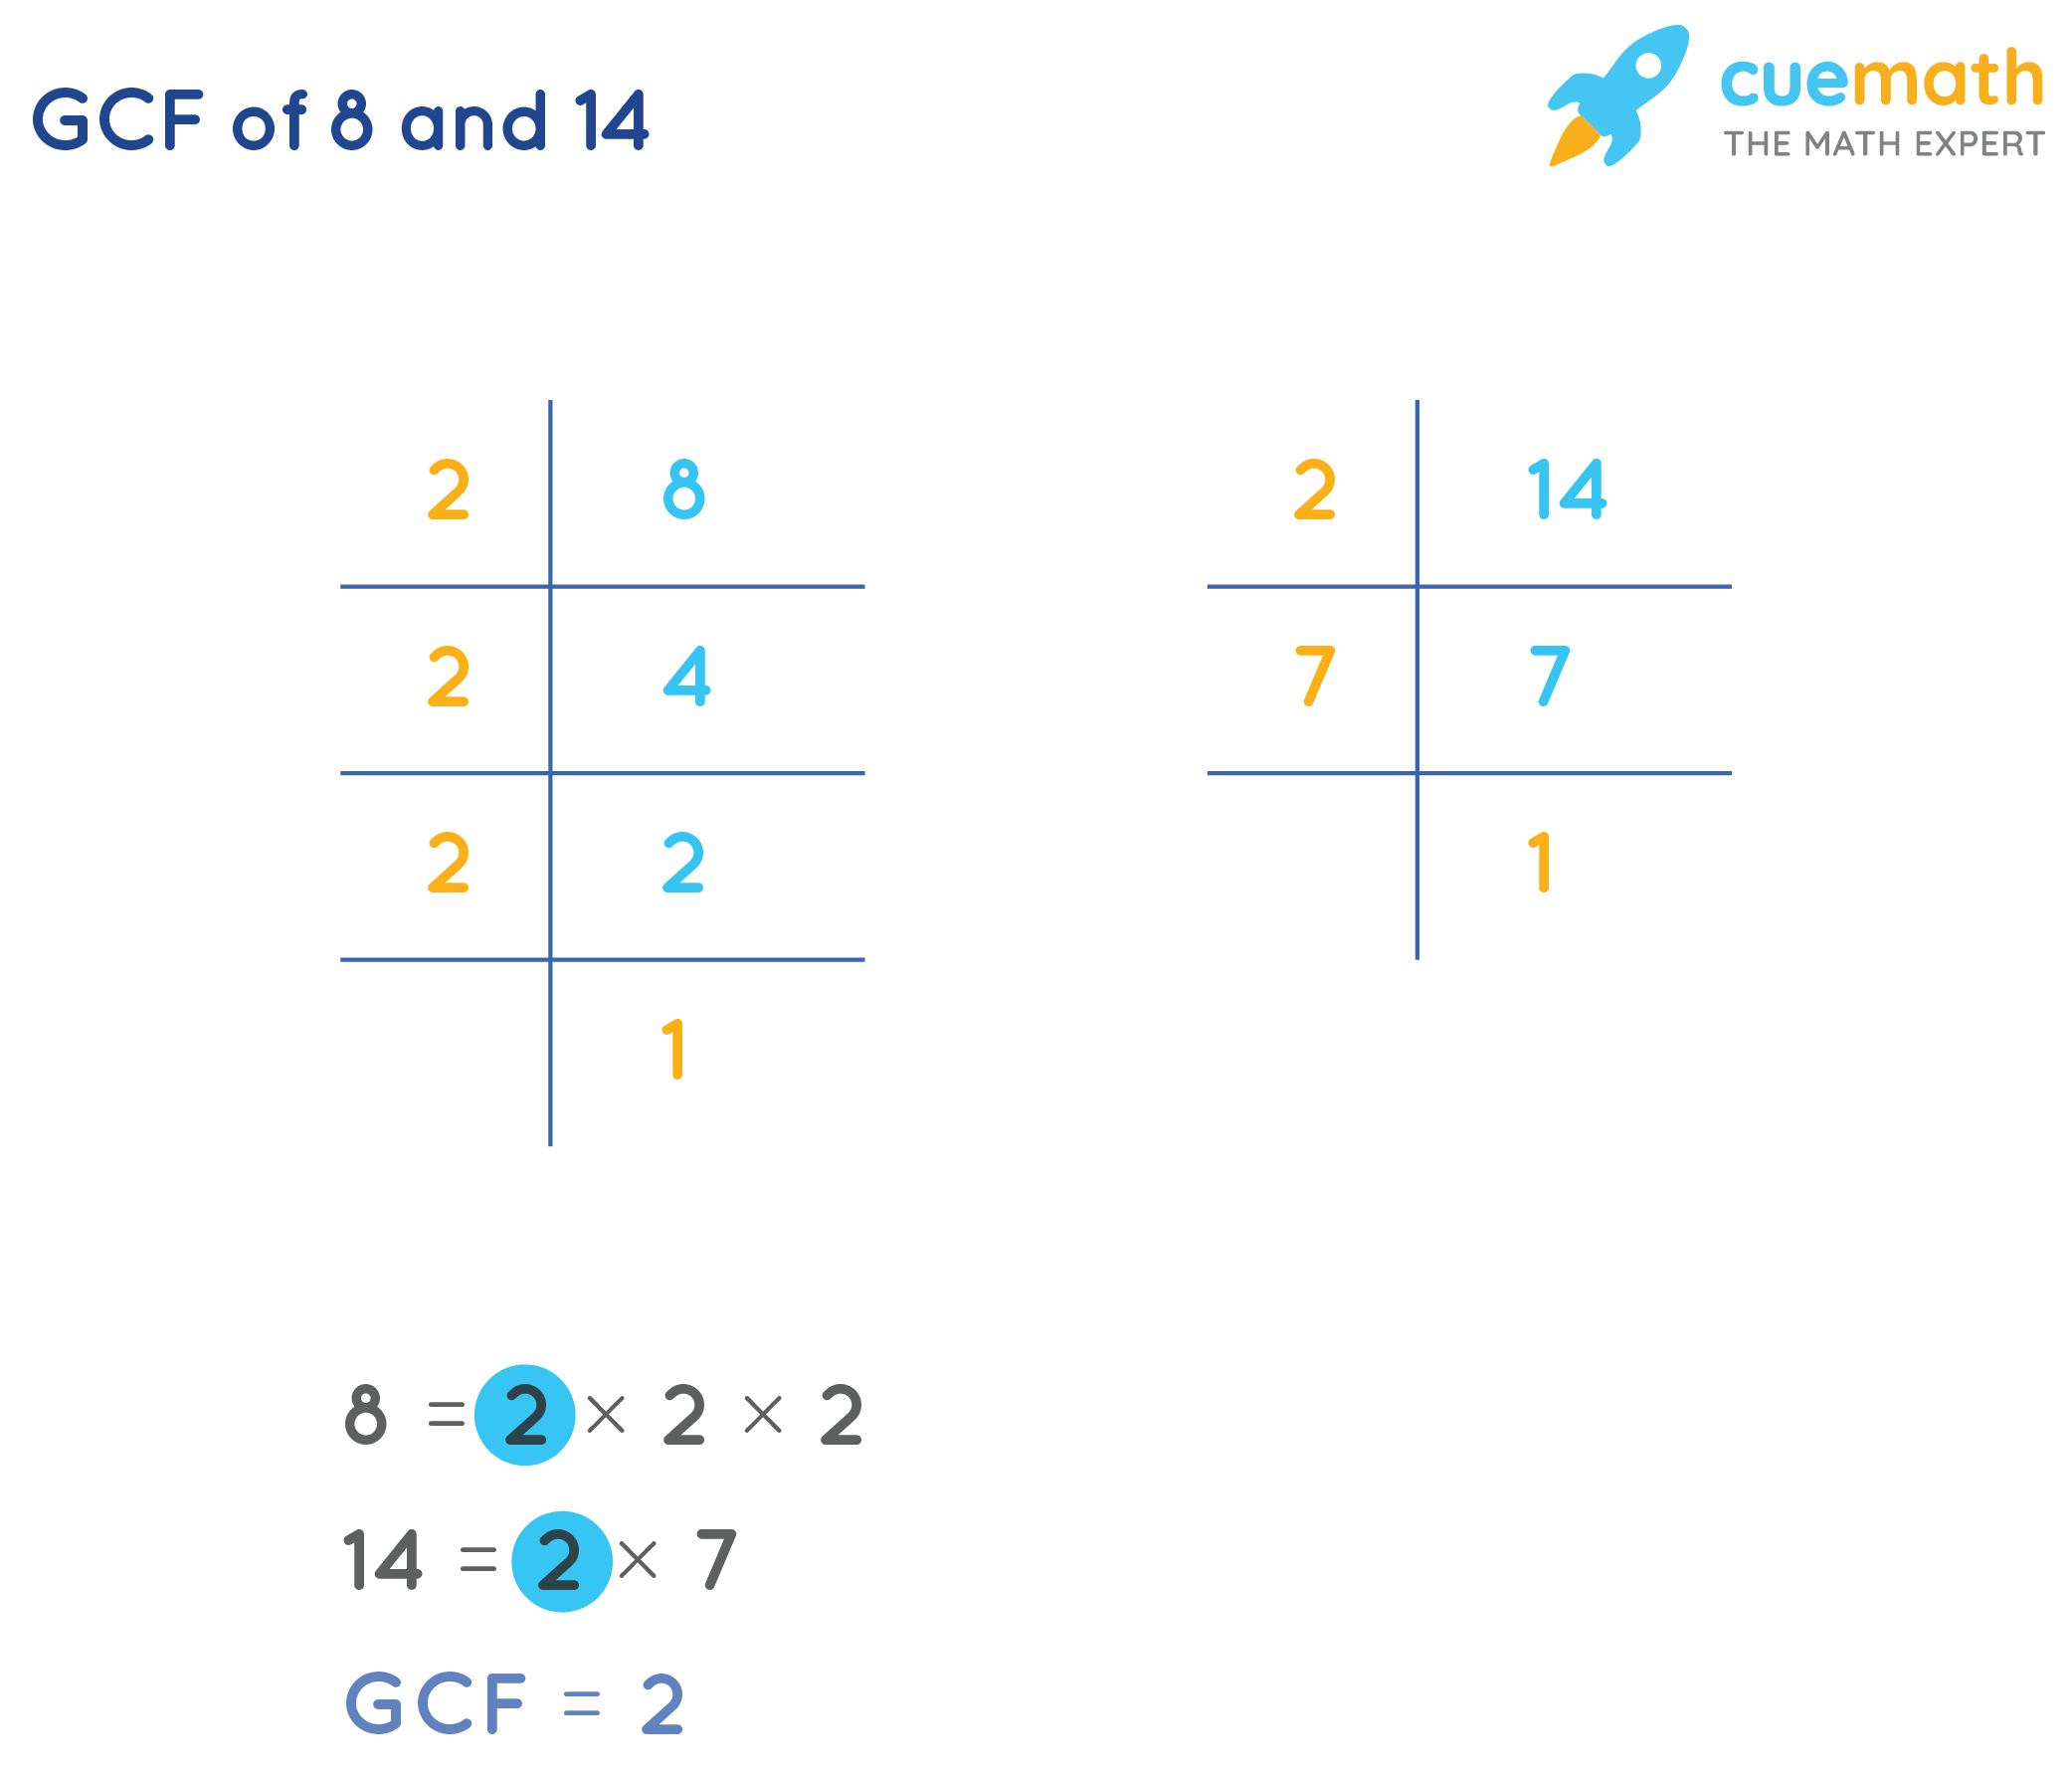 GCF of 8 and 14 by Prime Factorization